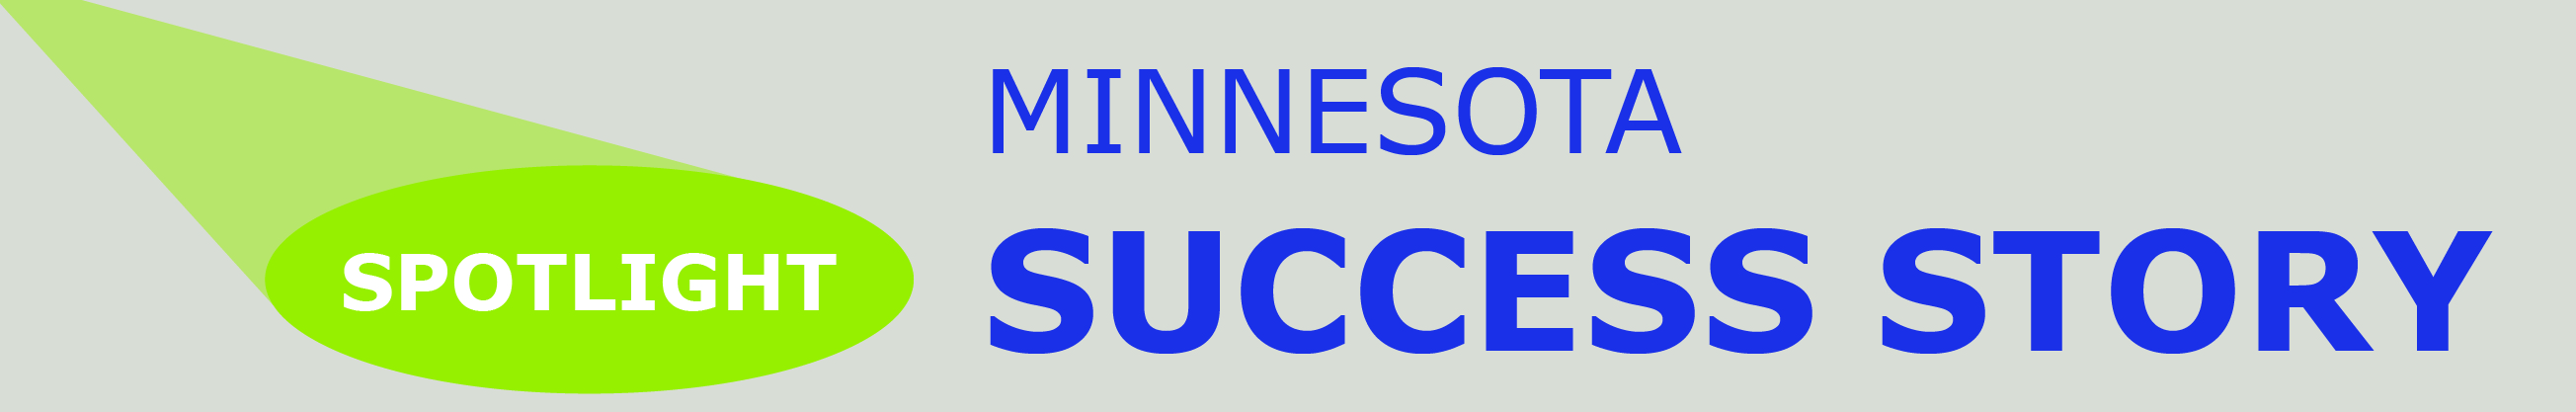 Spotlight: Minnesota Success Story